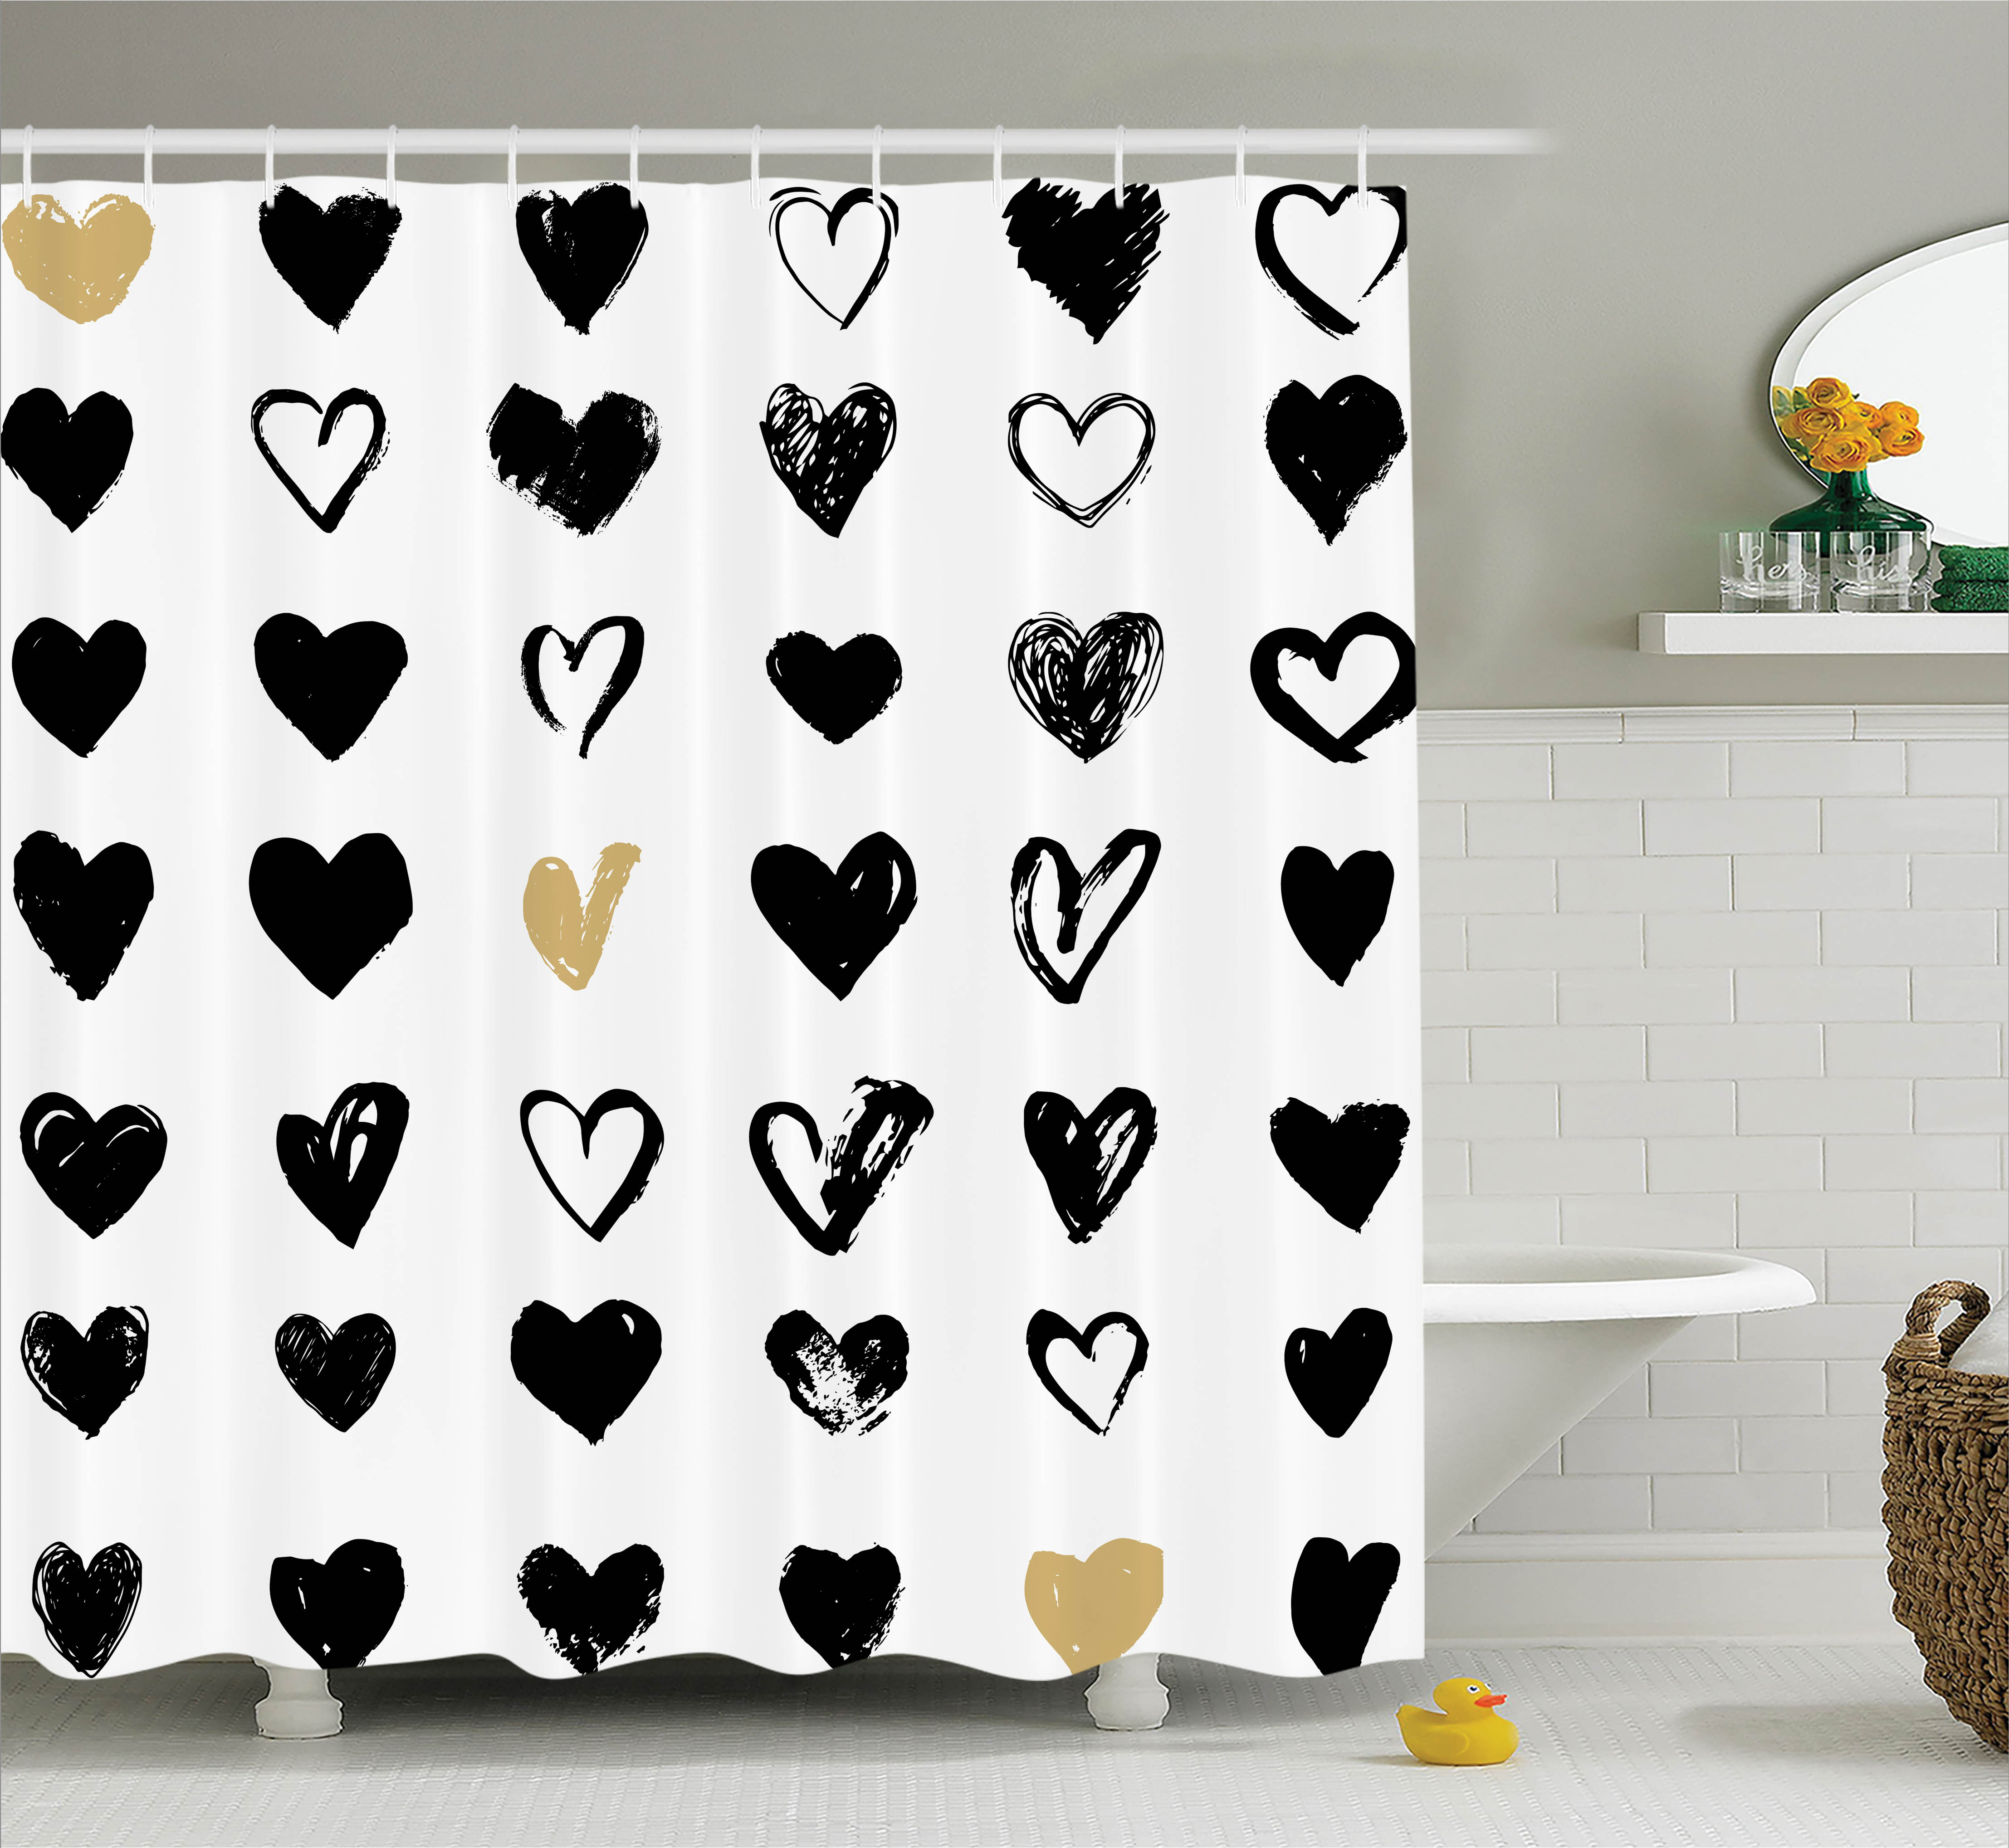 Love Shower Curtain Set, Small Heart Icons Let Me Love You Stylized Hipster's Liking Spouse Couples Art Design, Bathroom Decor, Tan Black White, by Ambesonne